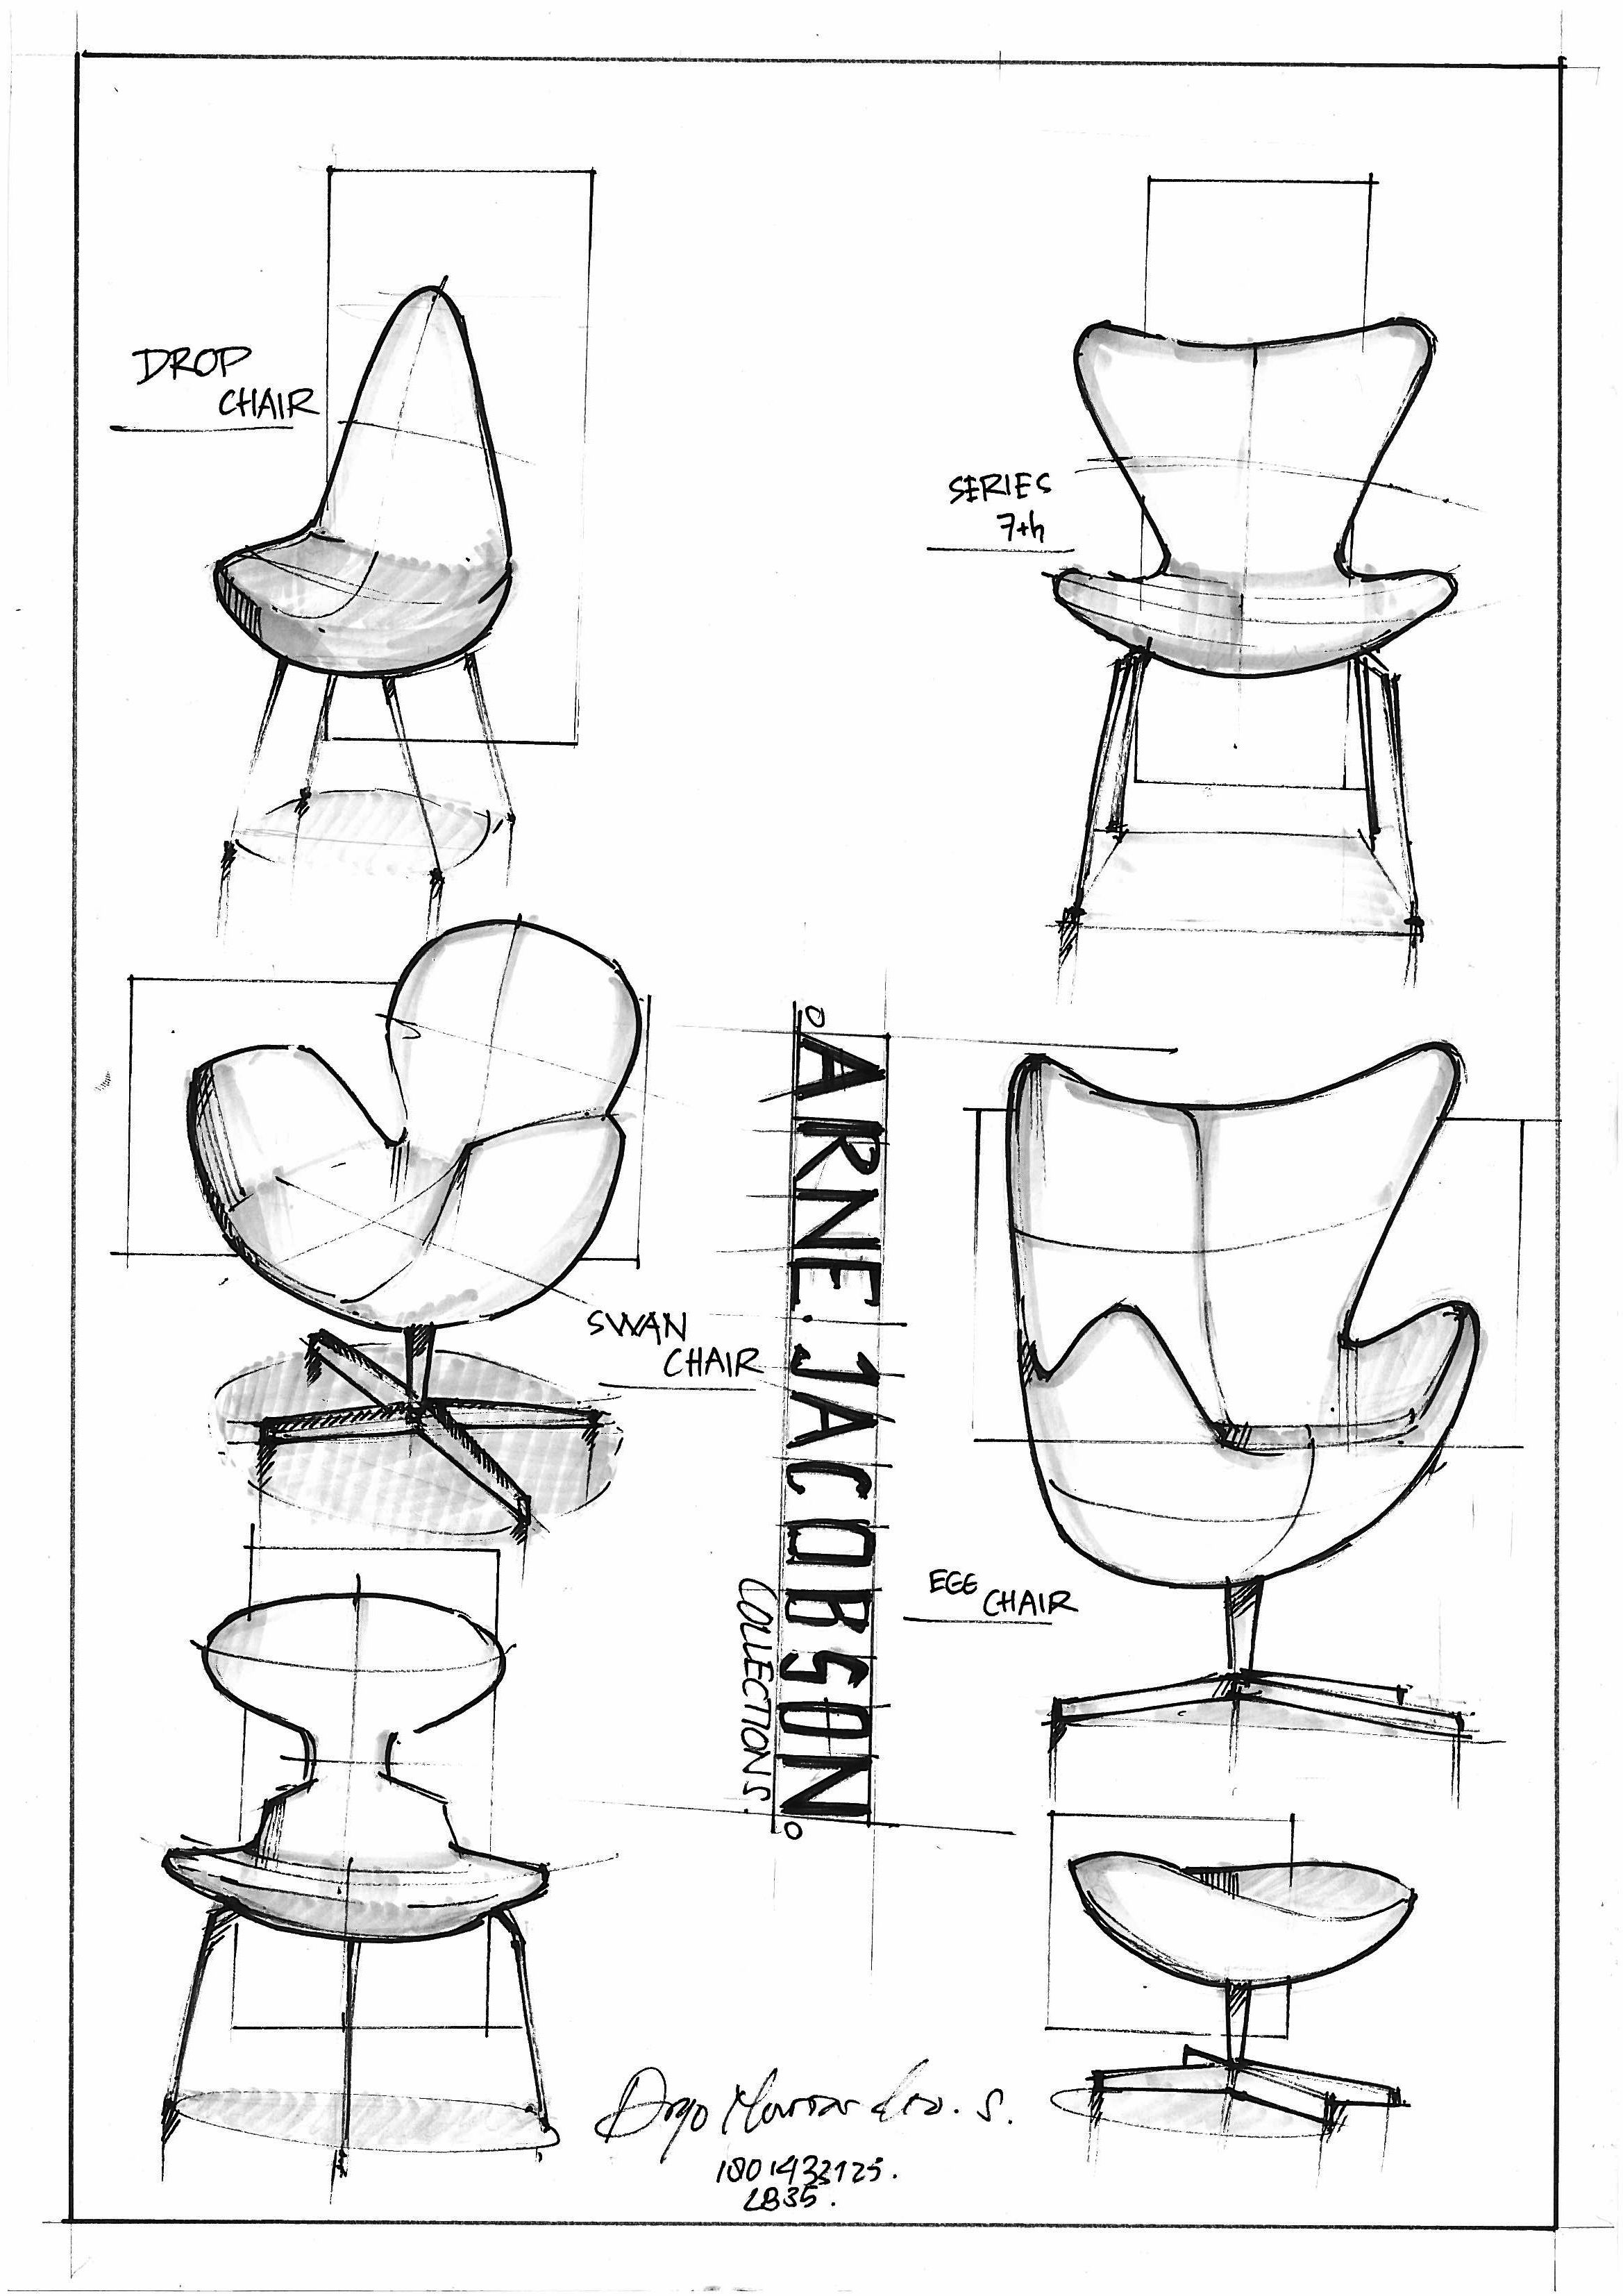 Eames Chair Drawing Freehand Sketch Arne Jacobsen Chair Collections My